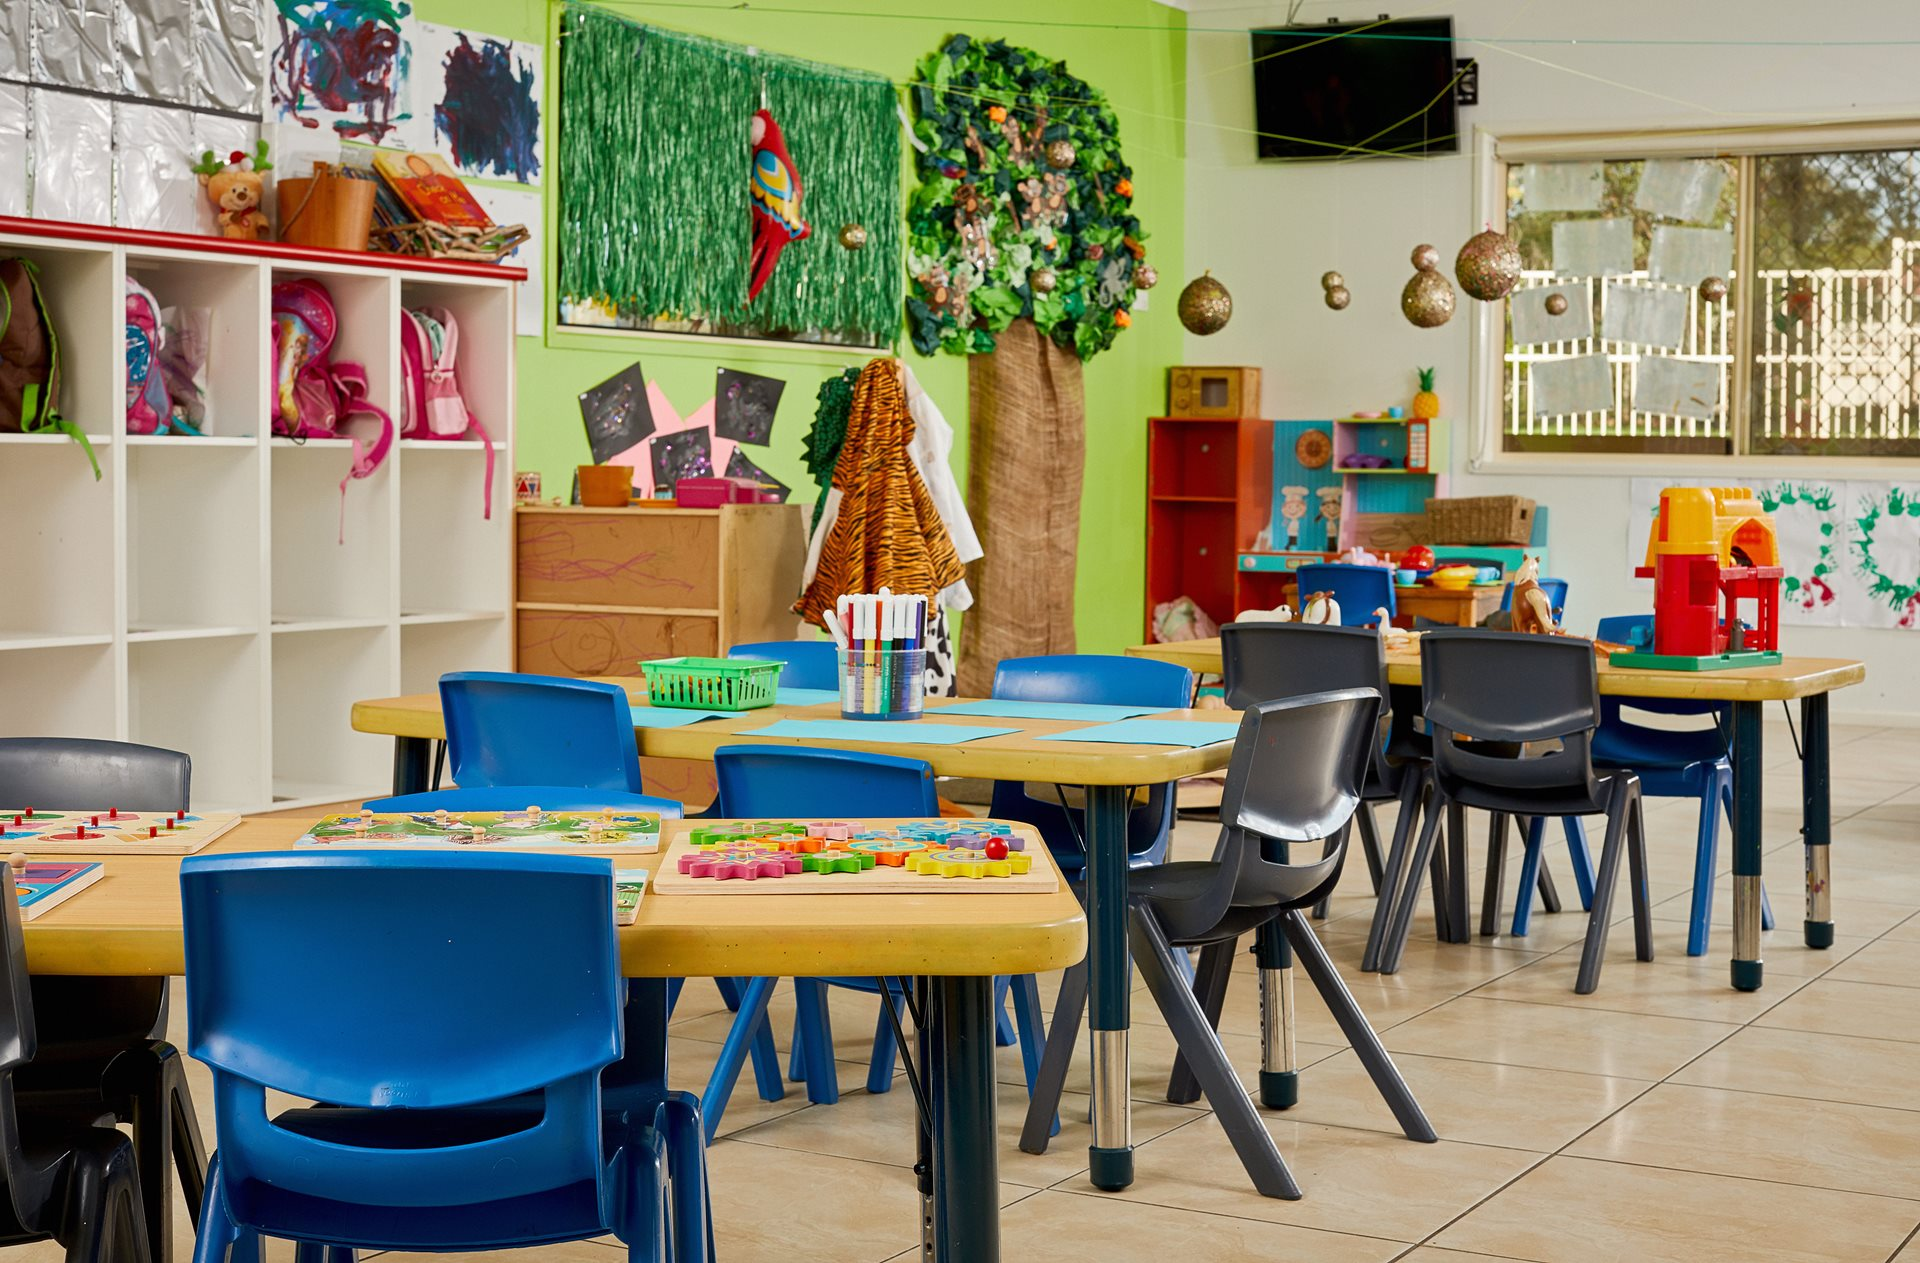 Classroom with tables and chairs and childrens art hanging from walls